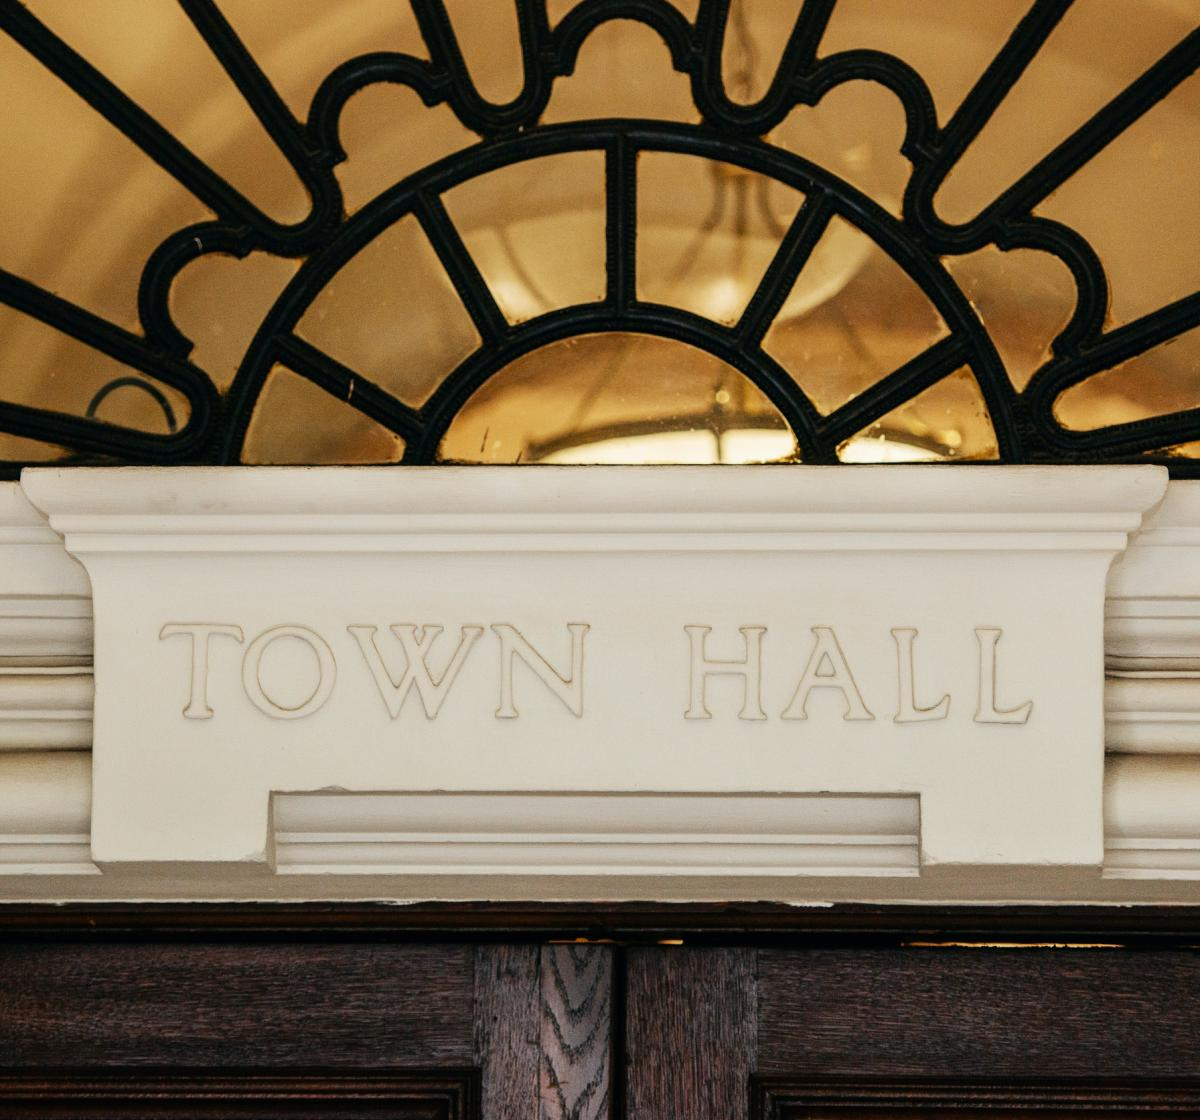 Photo of a town hall doorframe with the words Town Hall written on it.